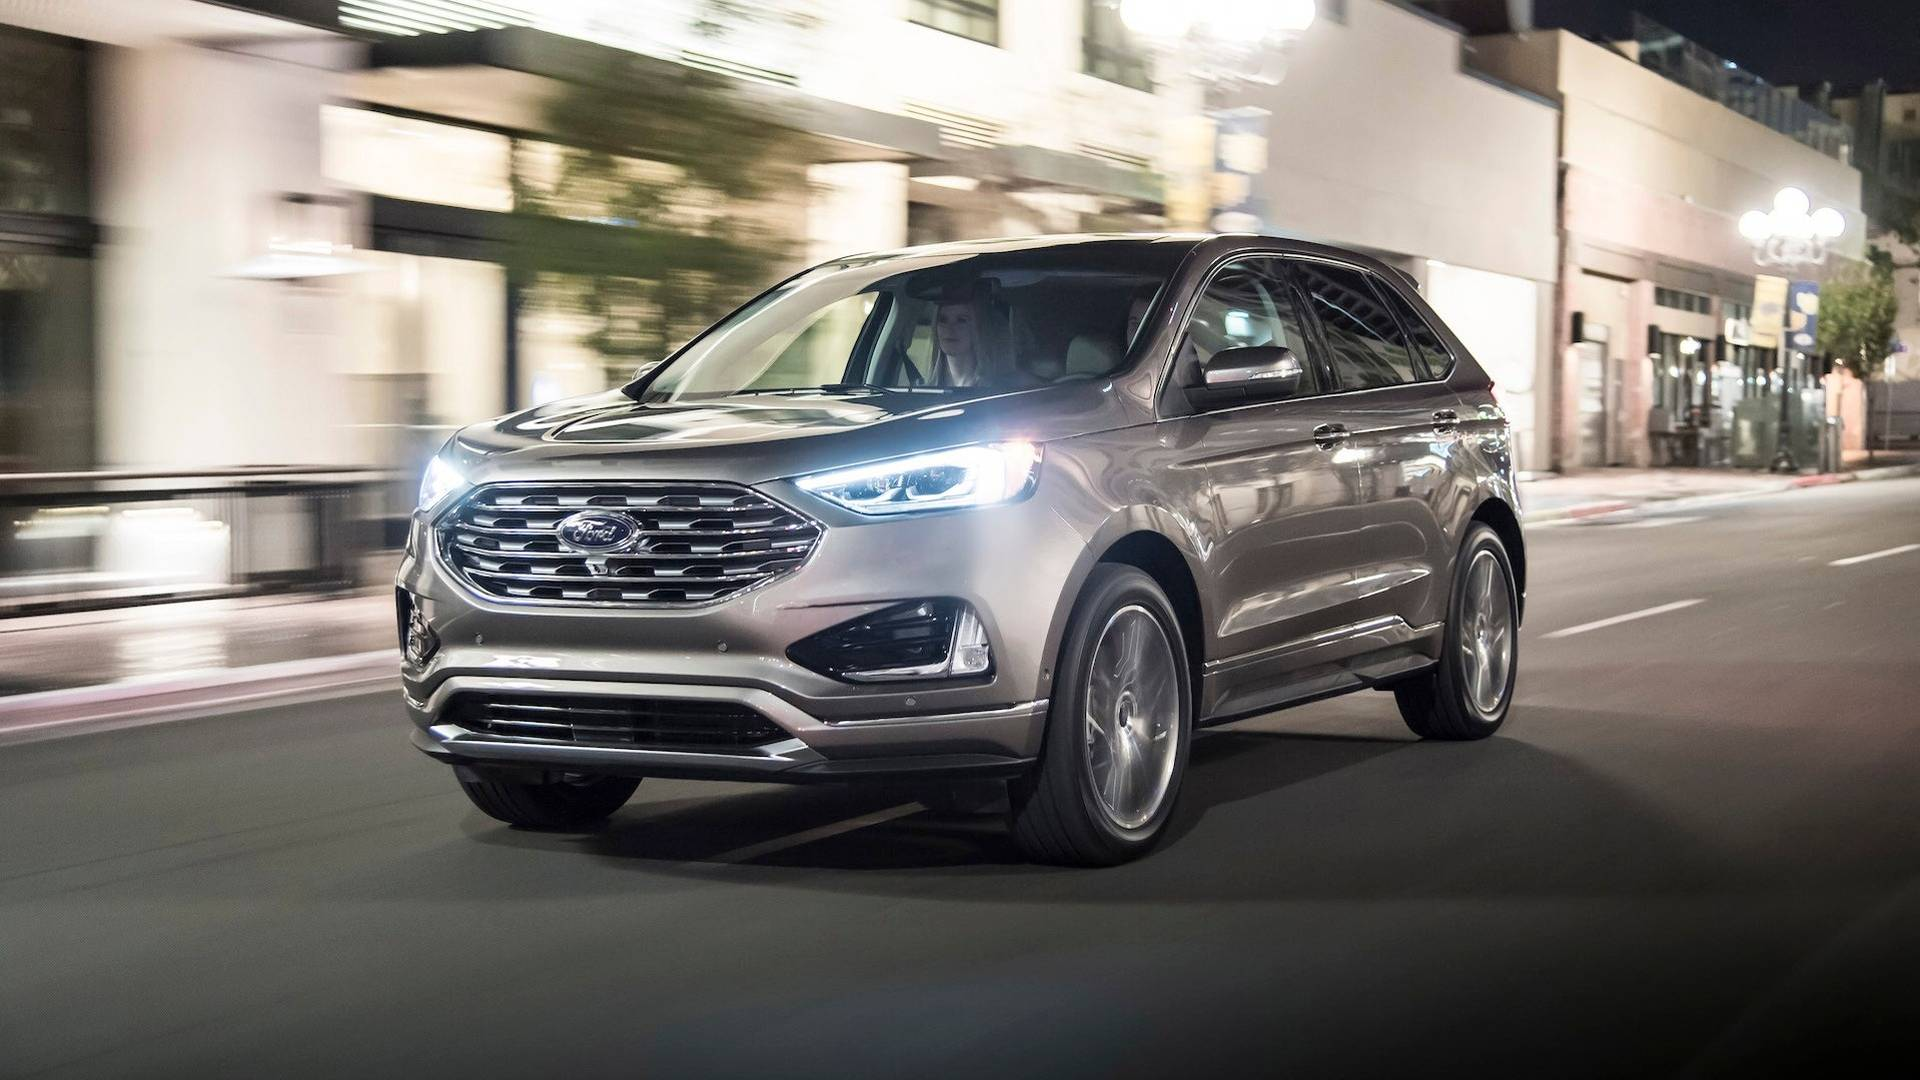 Junk Cars Detroit >> 2019 Ford Edge Titanium Elite is Nothing But an Appearance Package - autoevolution